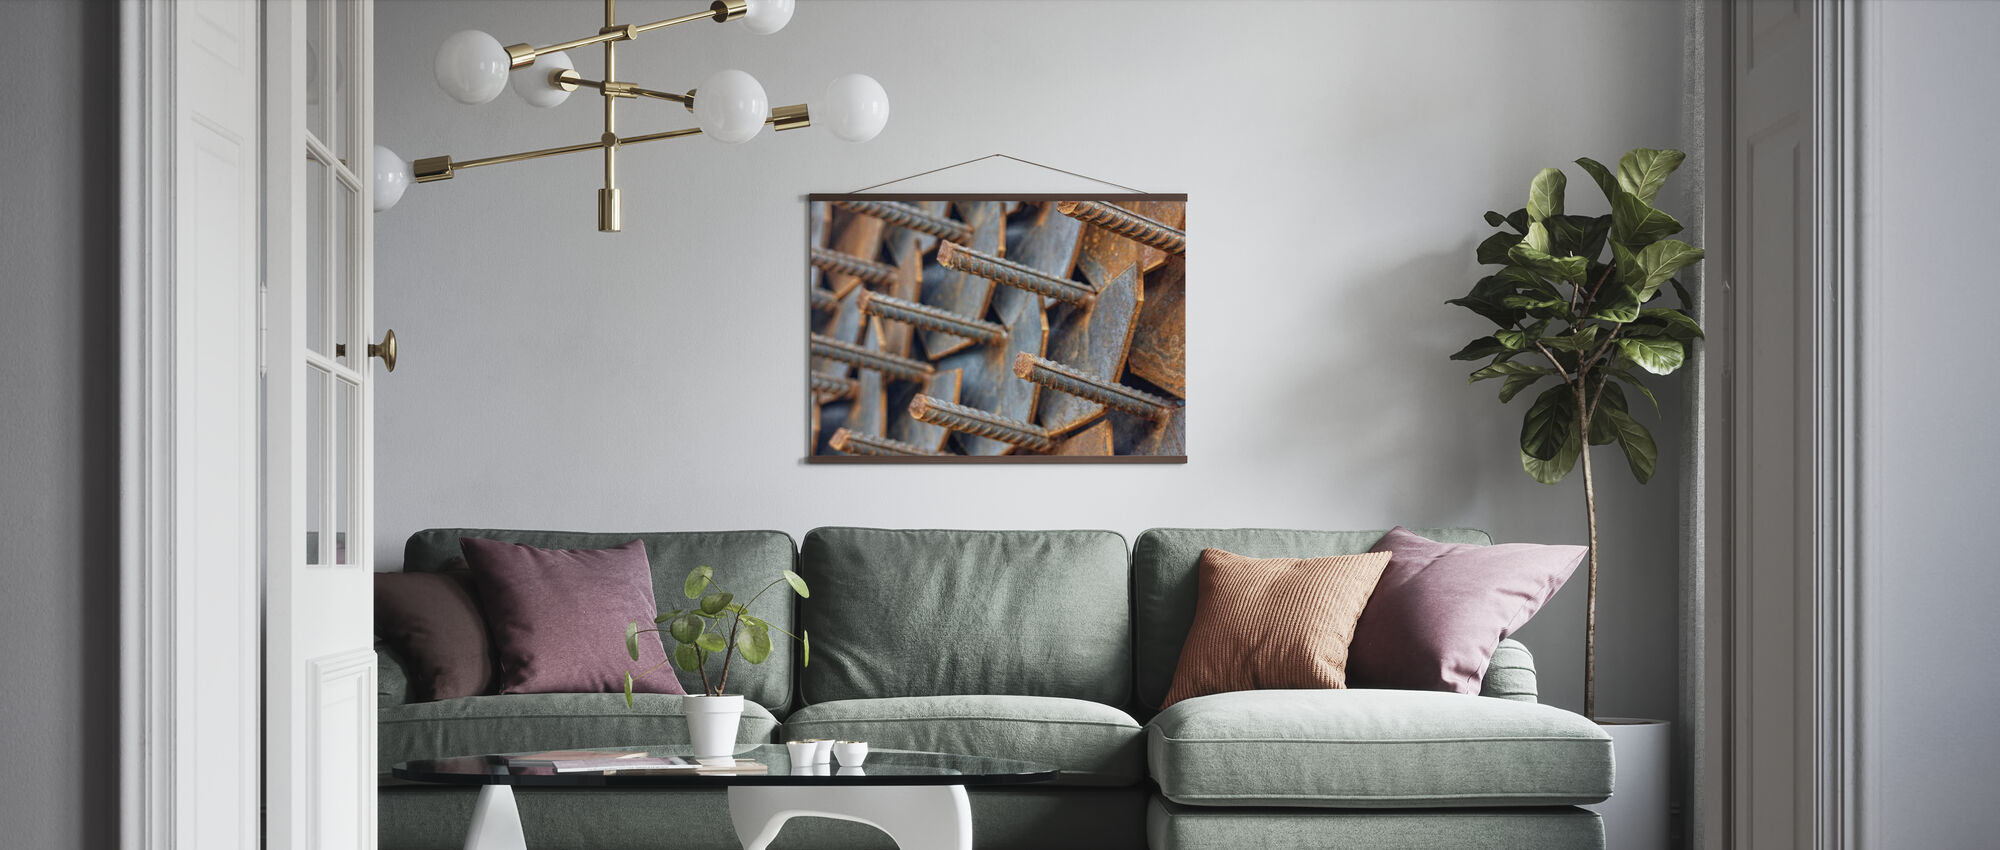 Reinforcement Rods - Poster - Living Room